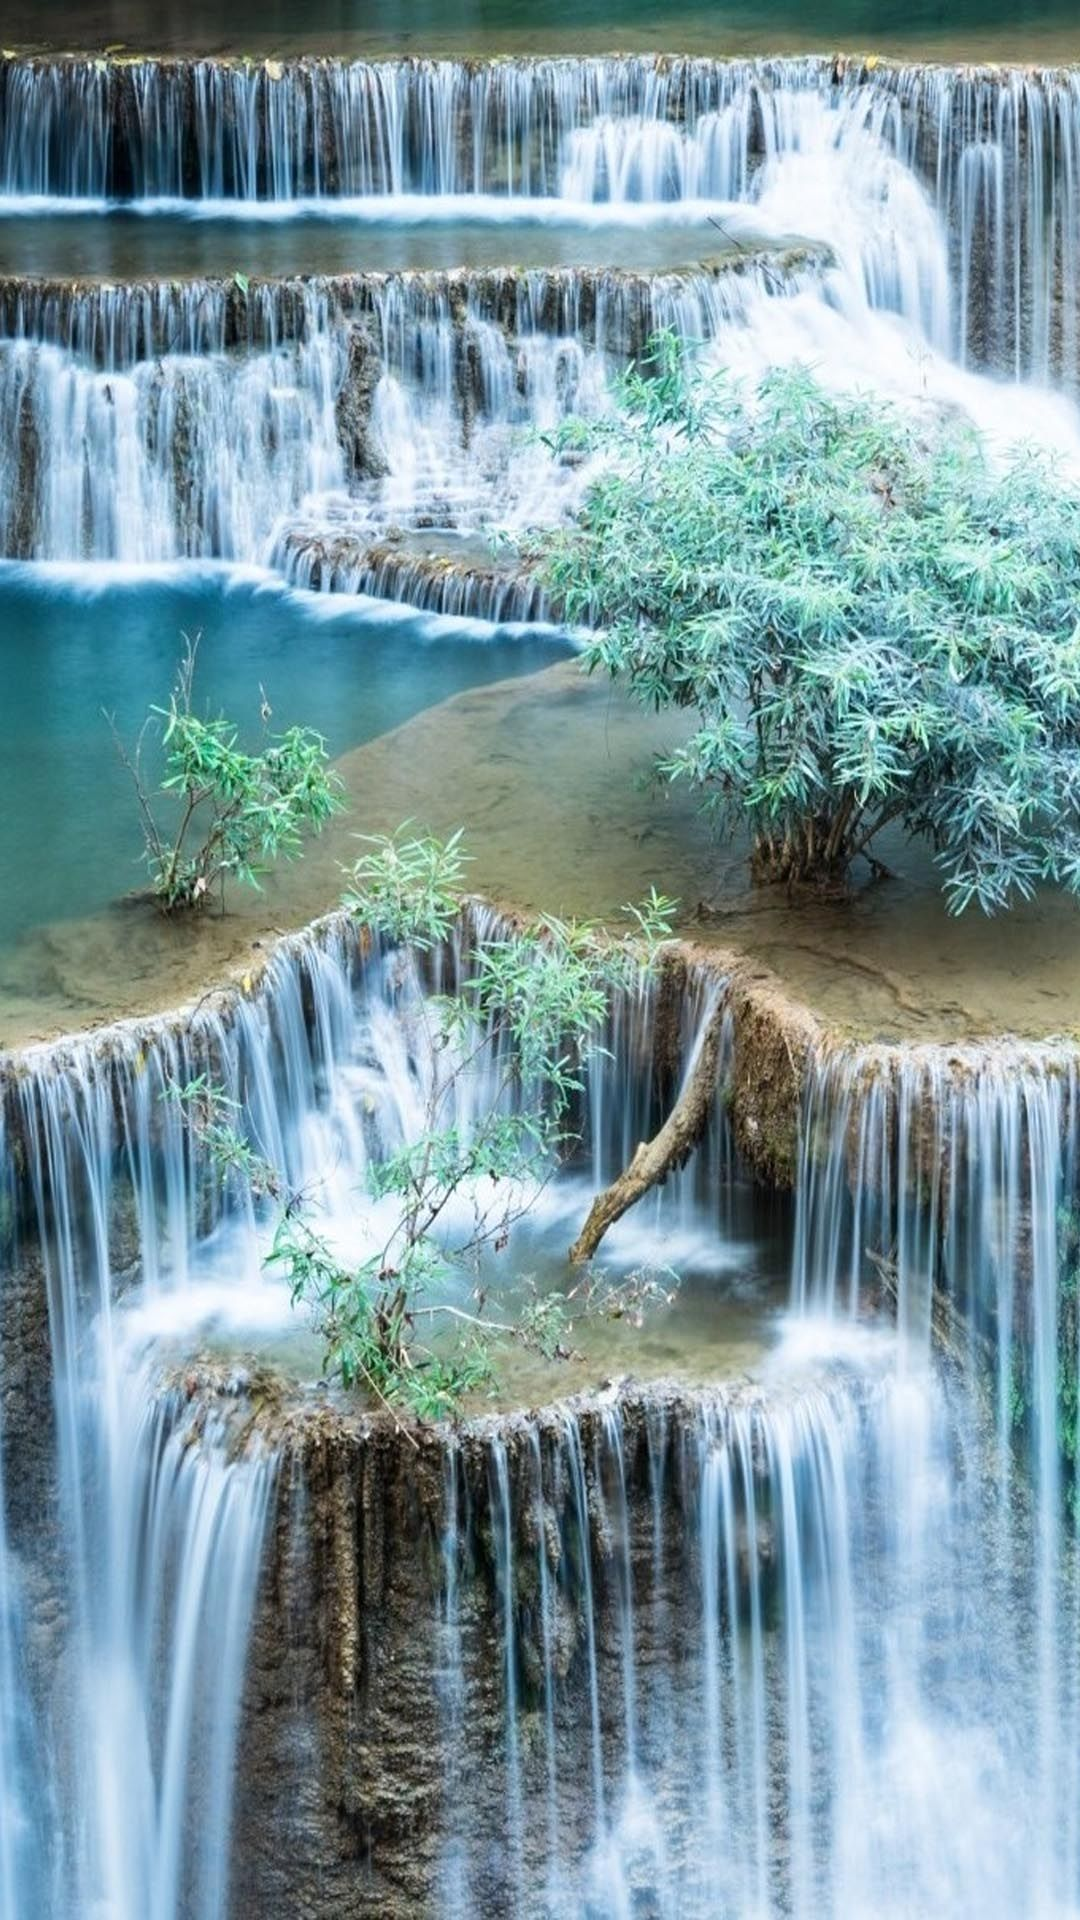 amazing nature waterfall hd iphone wallpaper - iphone hd wallpapers